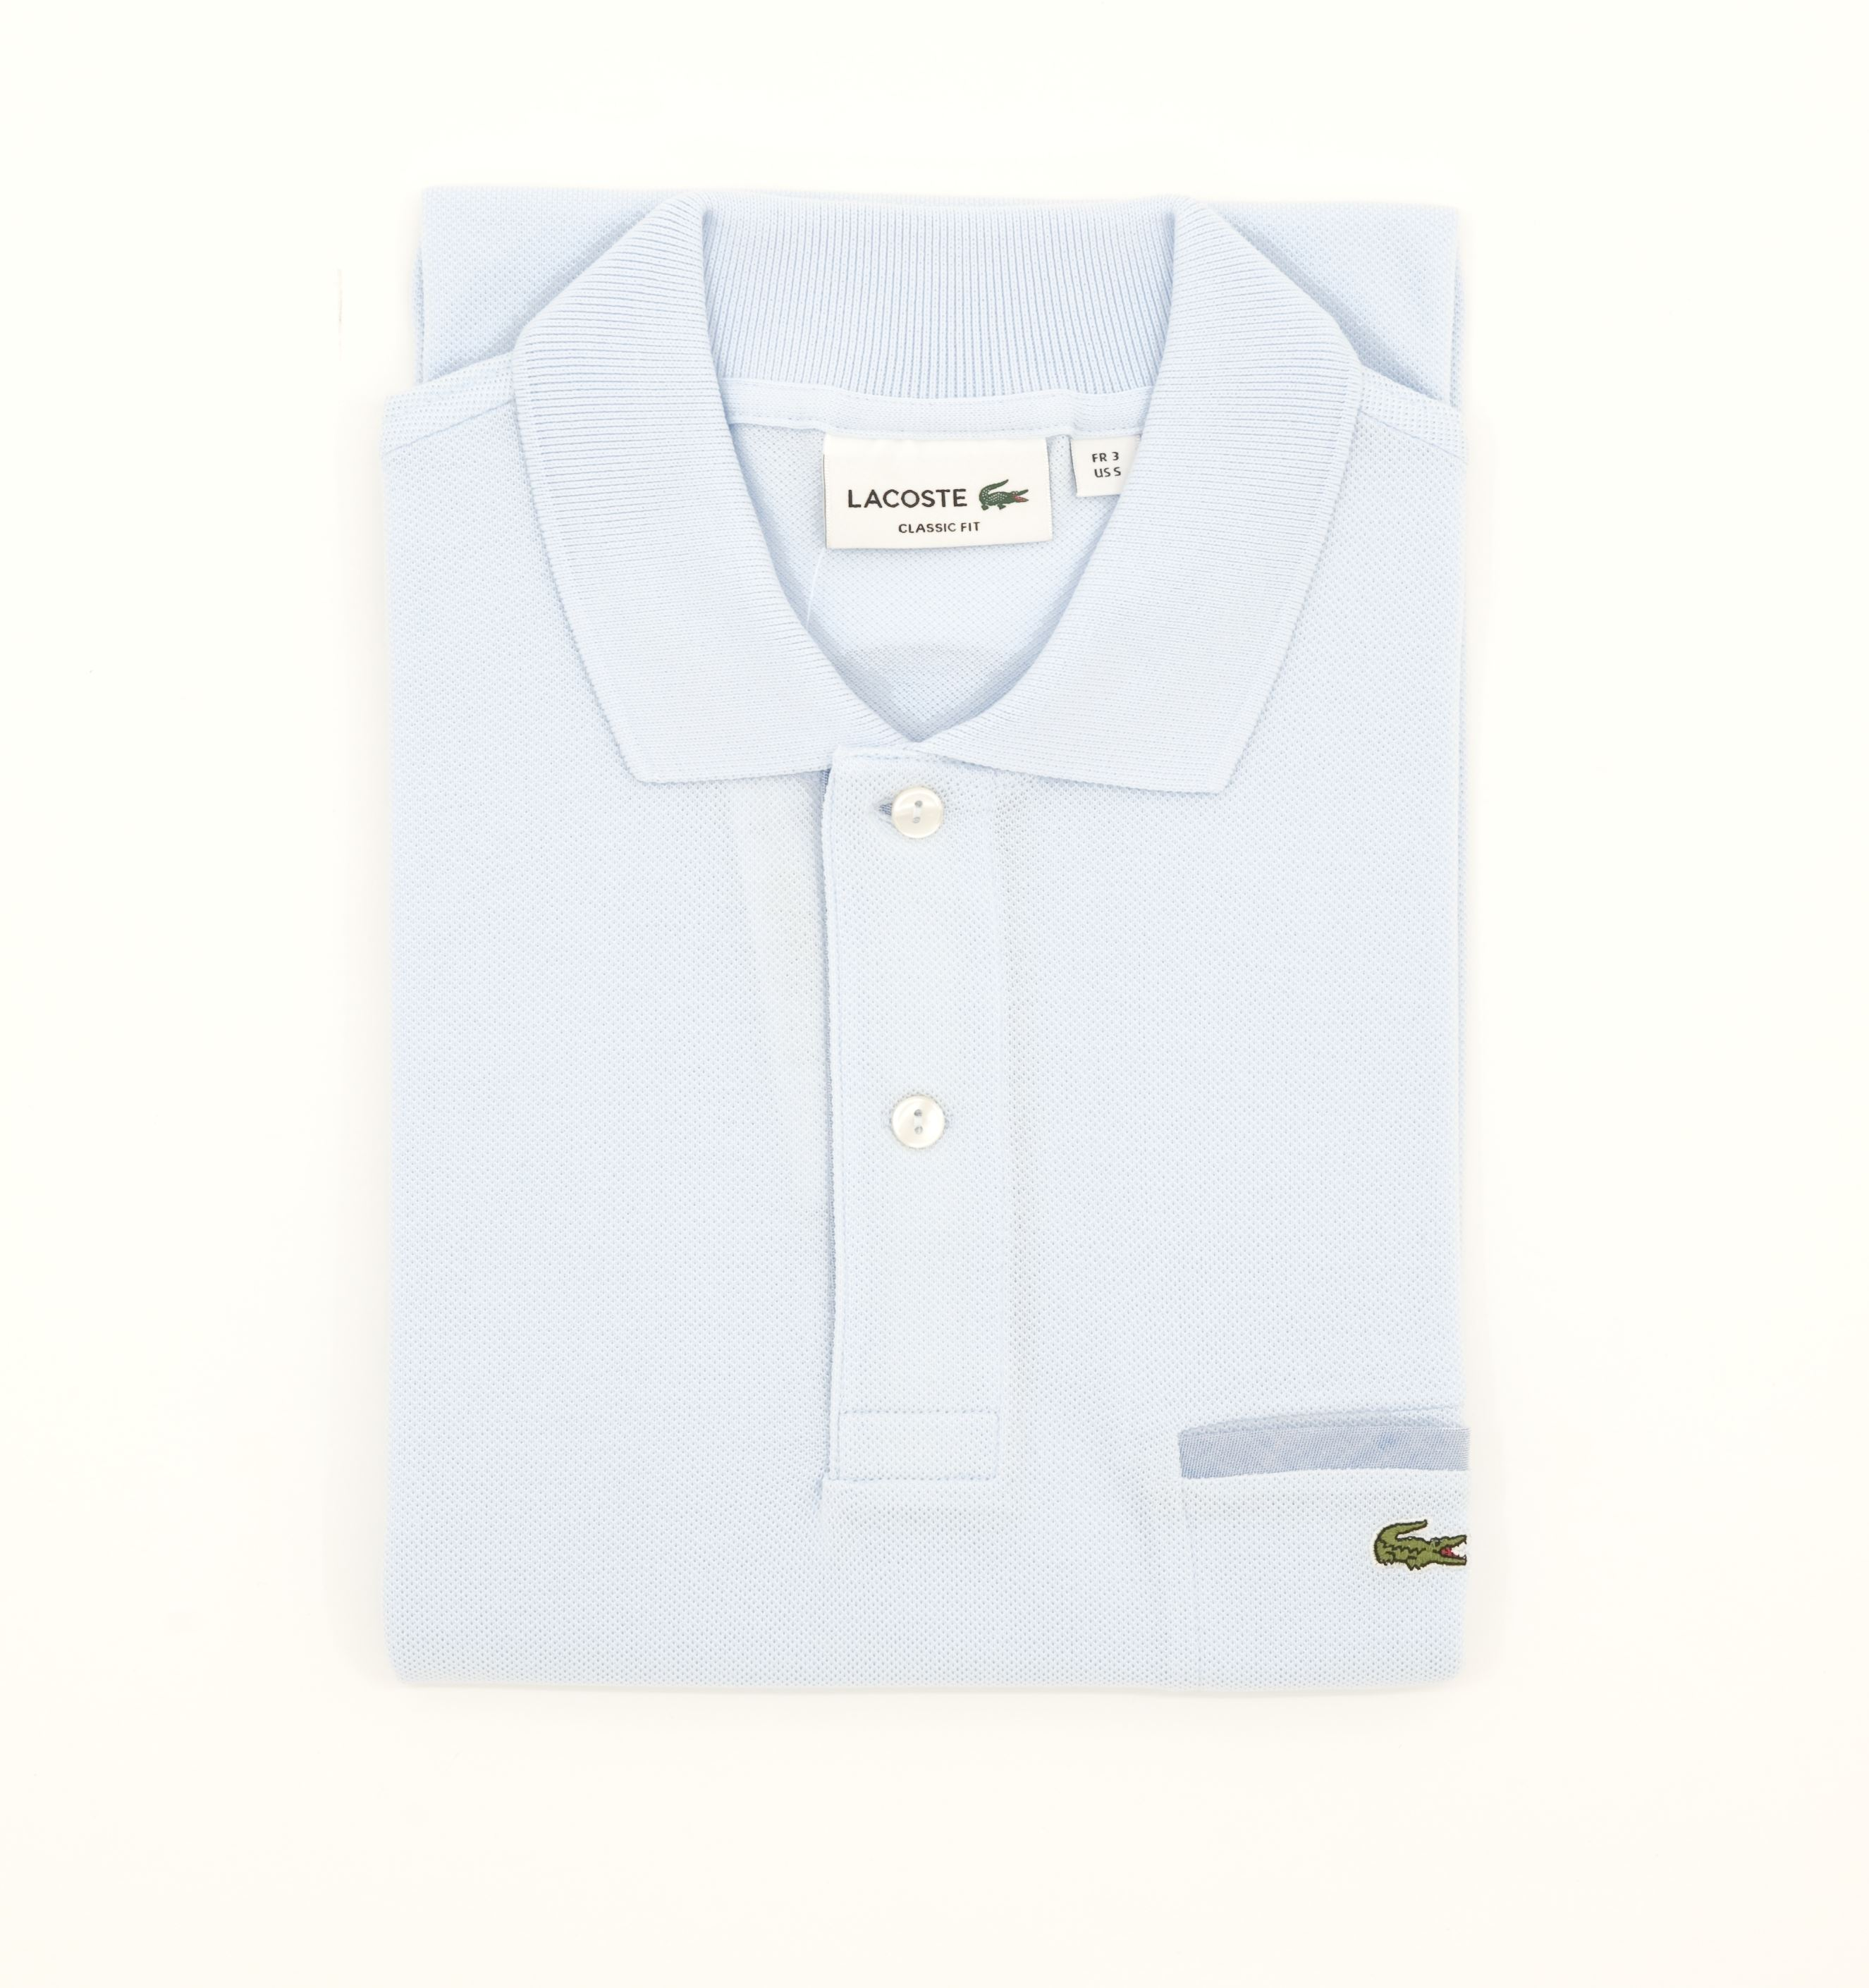 b7c4dfe1 Picture of LACOSTE POLO WITH POCKET. Picture of LACOSTE POLO WITH LIGHT BLUE  POCKET